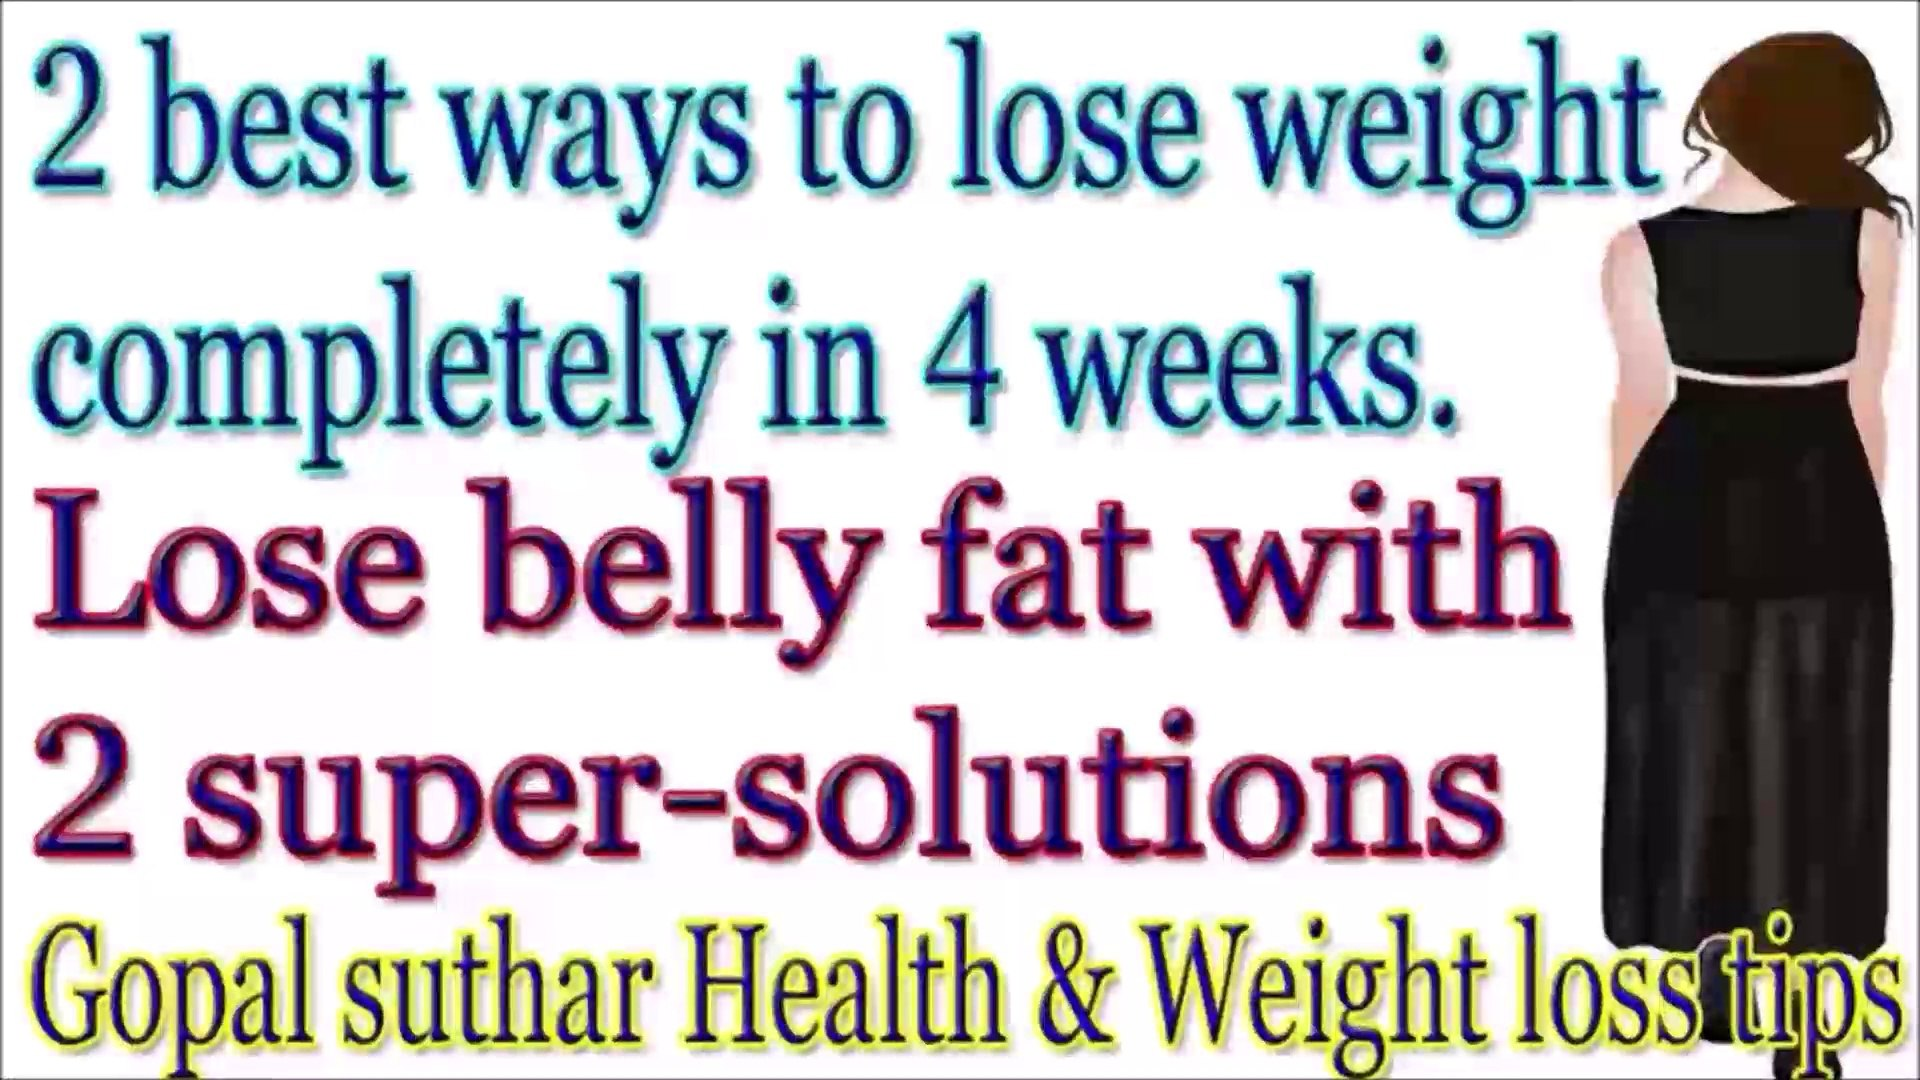 The best ways to lose weight completely in 4 weeks | Weight loss drink to lose whole butt, thighs an